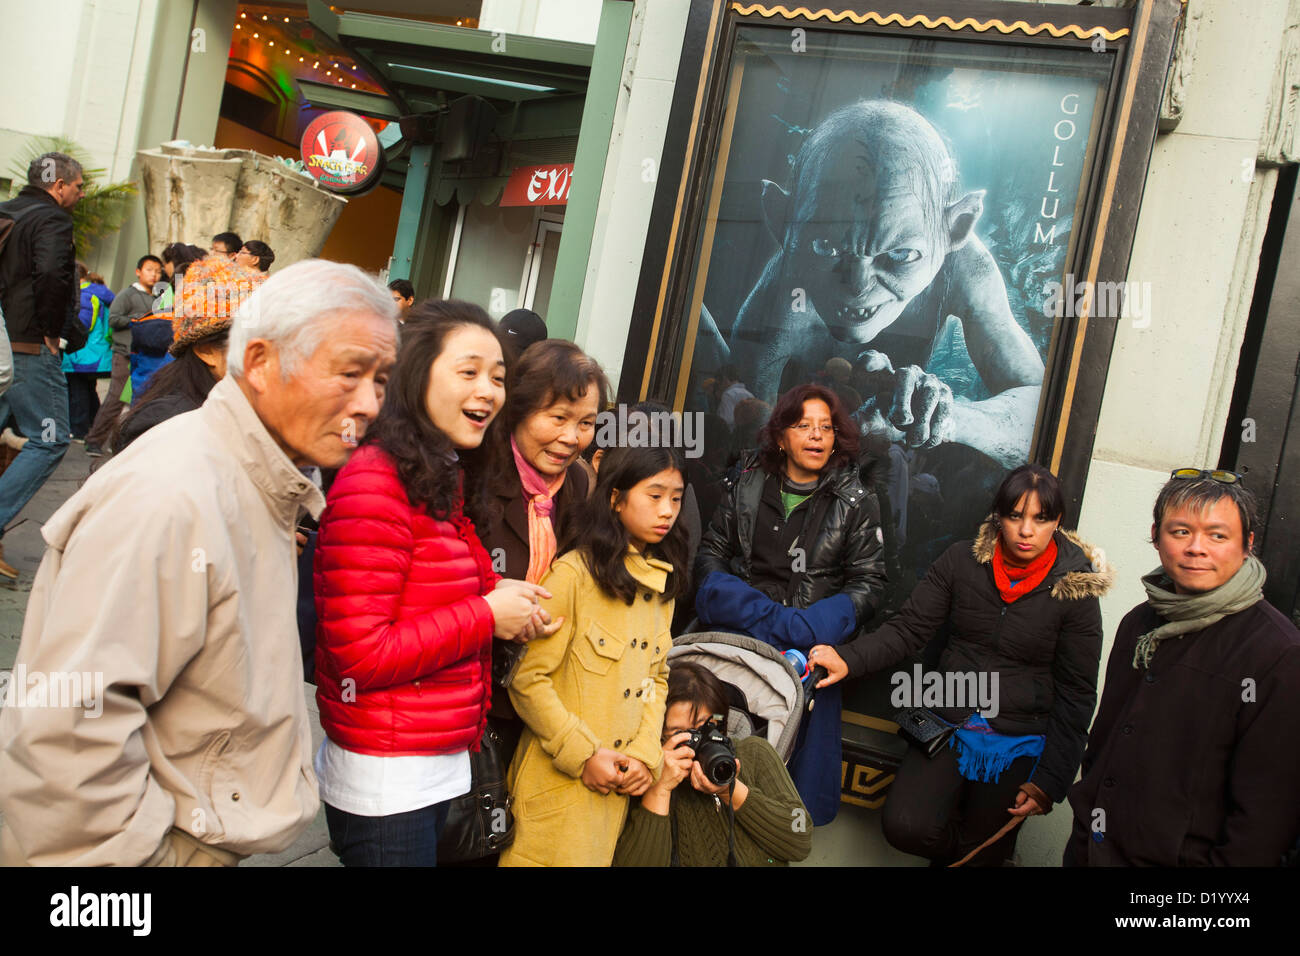 Grauman's Chinese Theater, Hollywood Boulevard, Los Angeles, California, United States of America - Stock Image